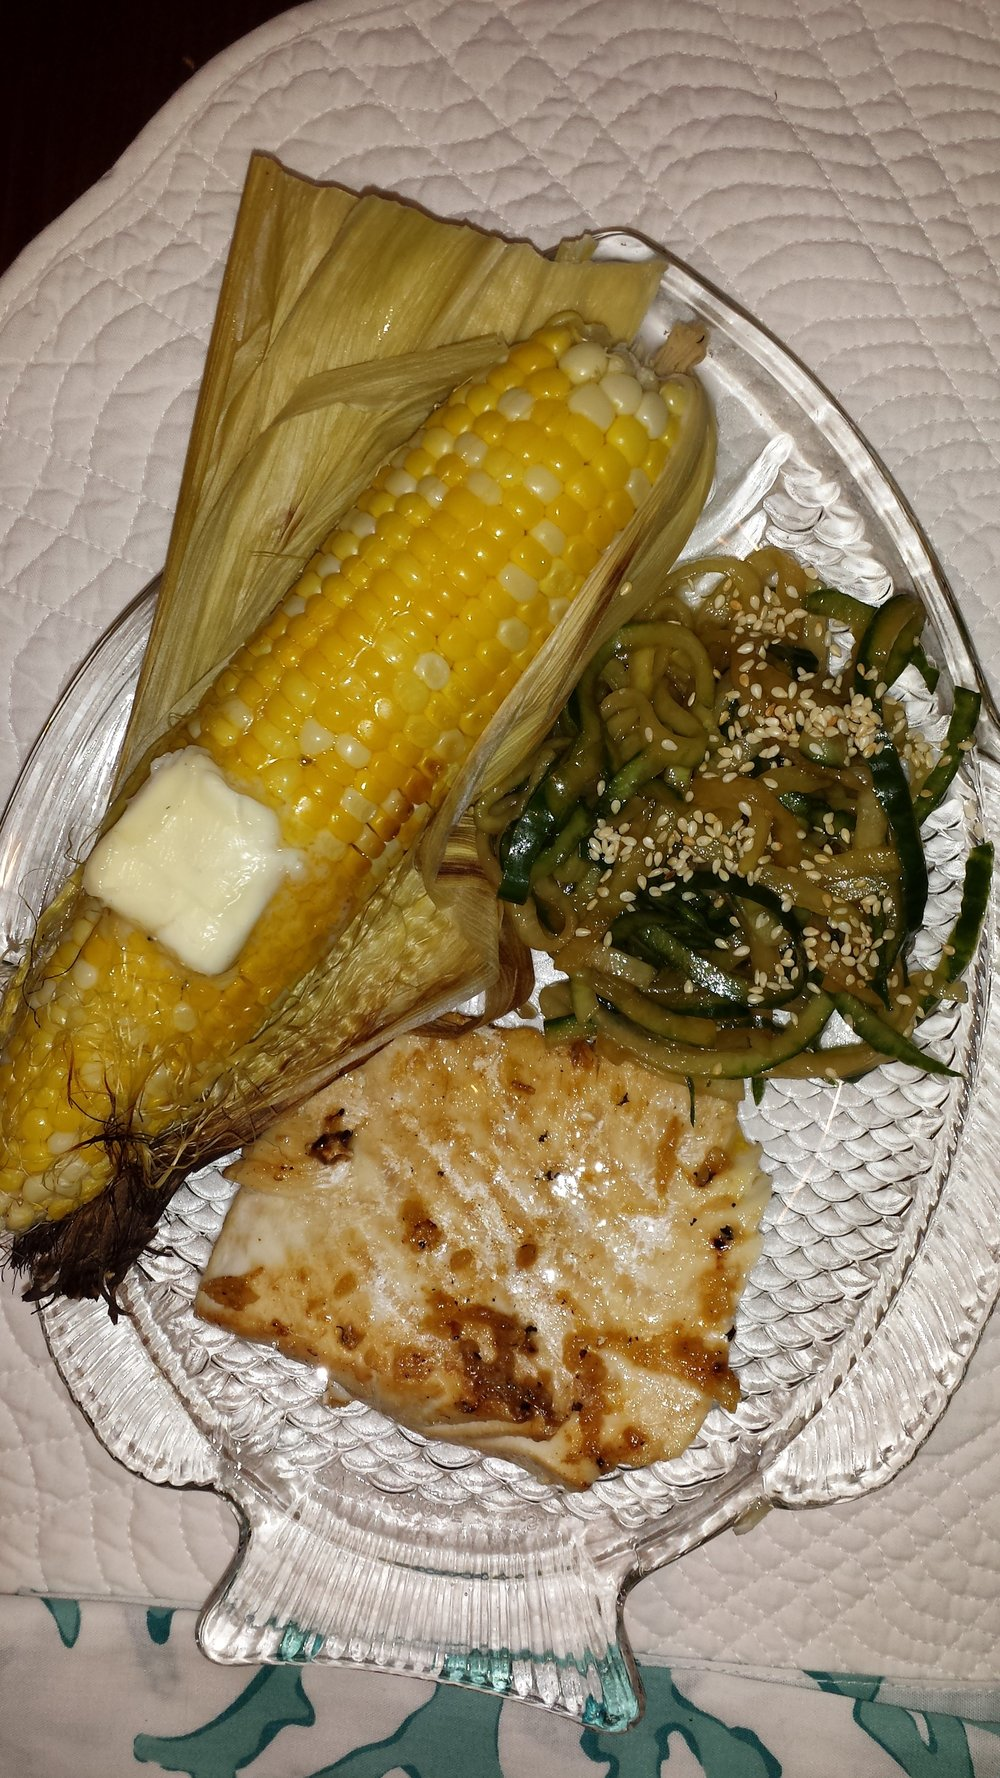 Grilled halibut w/sesame cucumber salad and corn on the cob